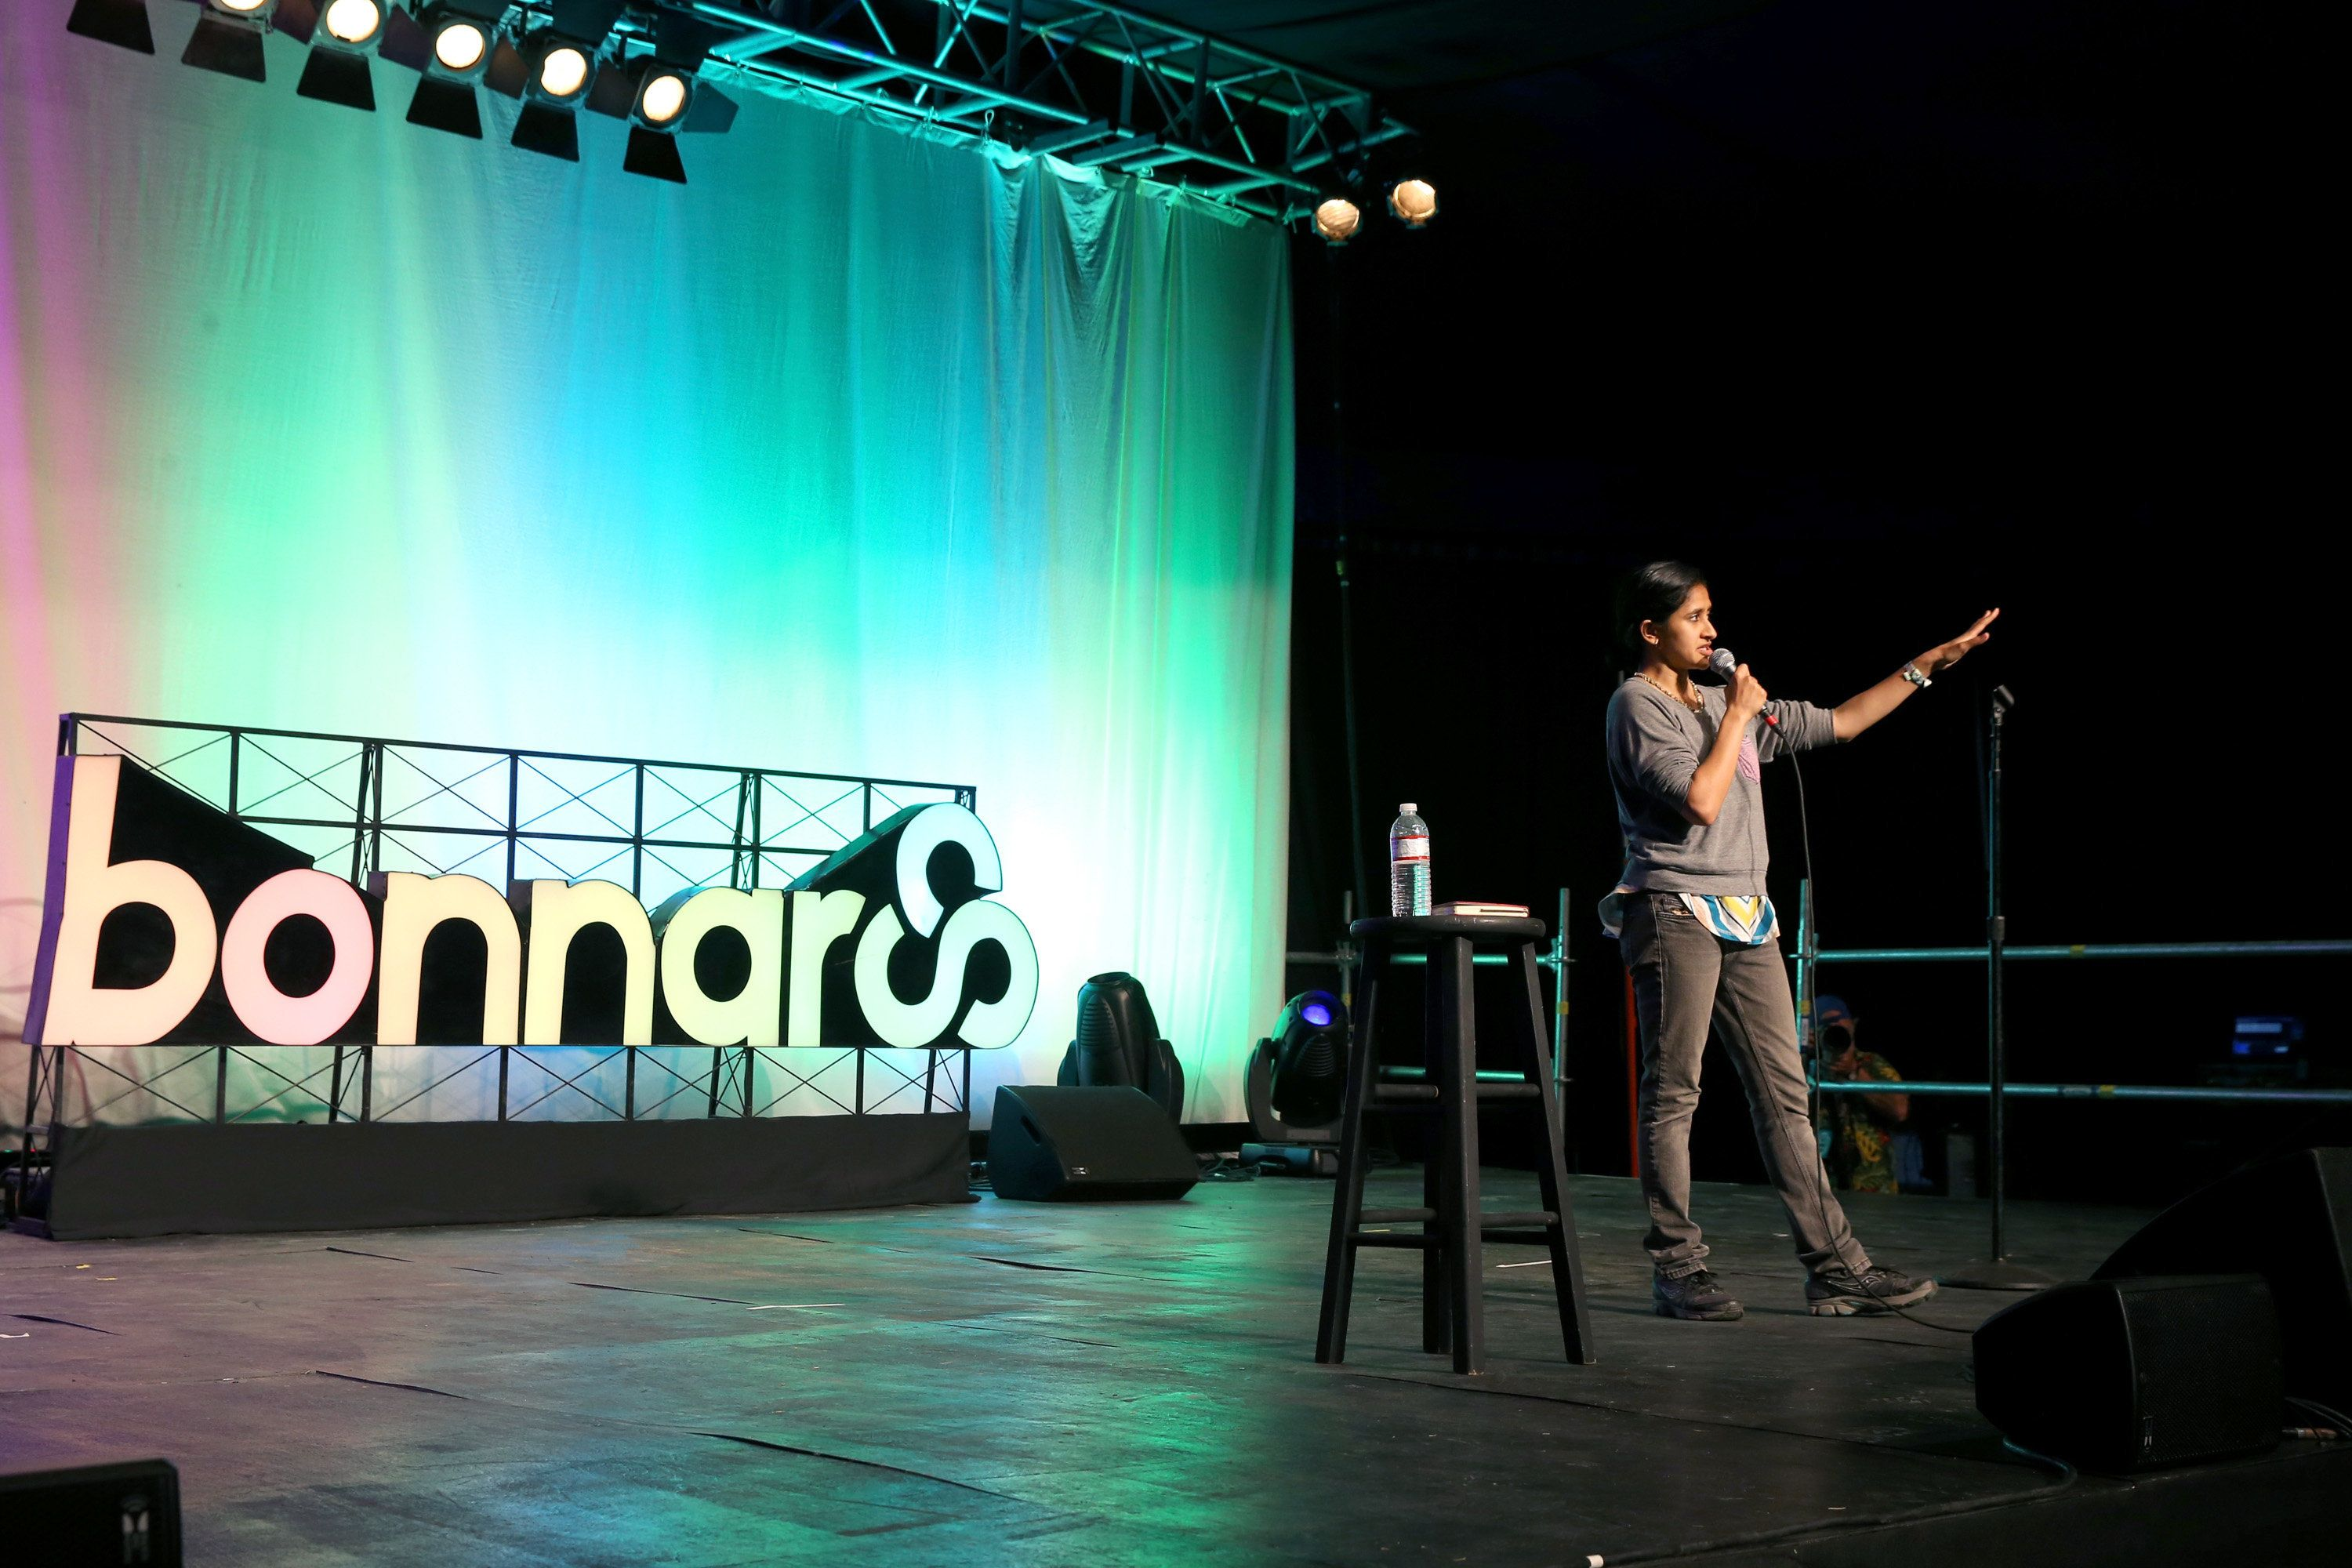 MANCHESTER, TN - JUNE 09:  Comedian Aparna Nancherla performs onstage during Comedy B'Roo Haha on Day 1 of the 2016 Bonnaroo Arts And Music Festival on June 9, 2016 in Manchester, Tennessee.  (Photo by FilmMagic/FilmMagic for Bonnaroo Arts And Music Festival )